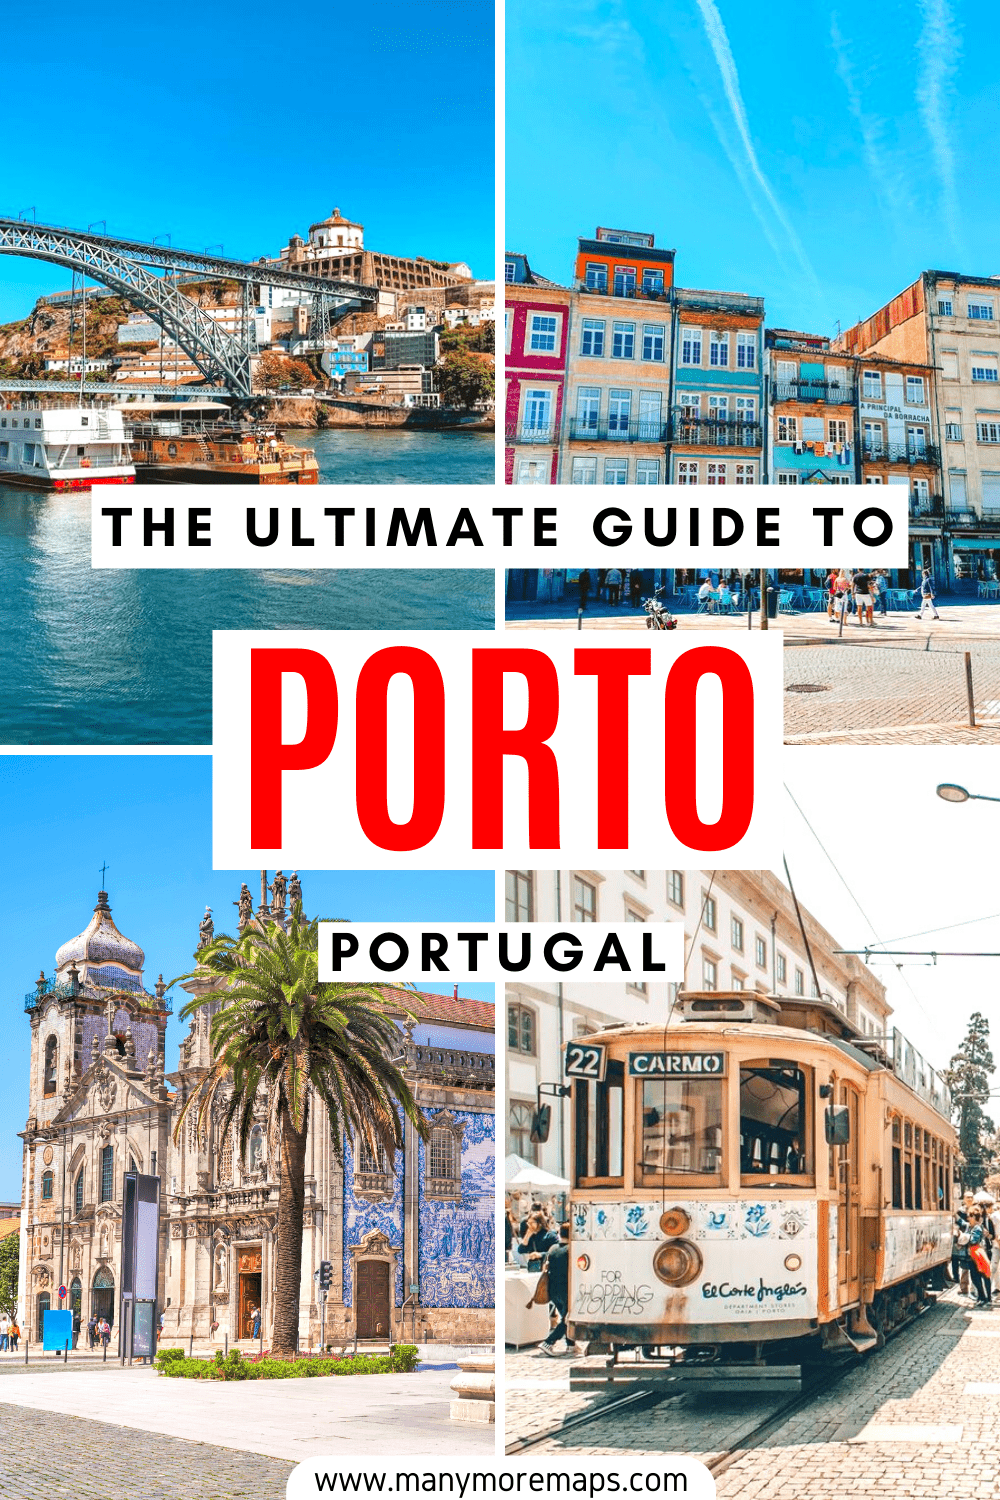 Everything you need to know to plan your trip to Porto, a beautiful city in the North of Portugal! This travel guide includes the best things to see and do in Porto, a suggested itinerary for Porto, and other travel tips such as the best restaurants, where to stay, and when is the best time to visit!